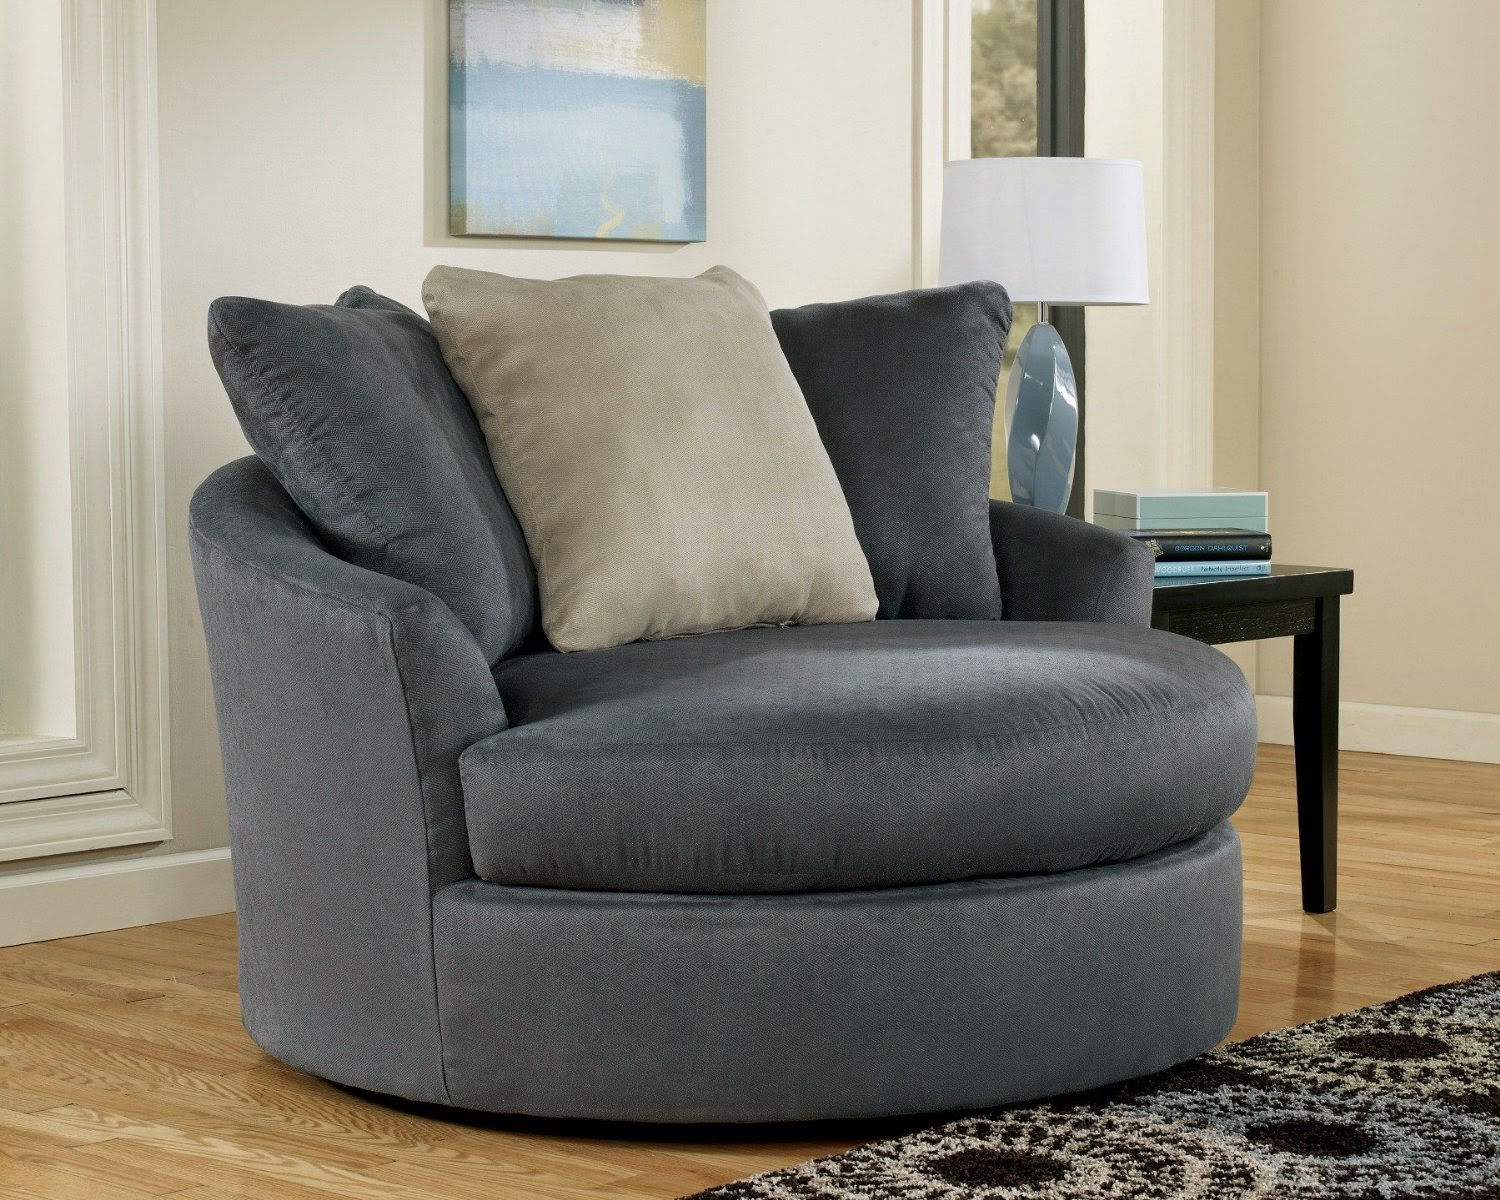 Sillones Redondos Cuddle Couch Cuddle Couch For Sale